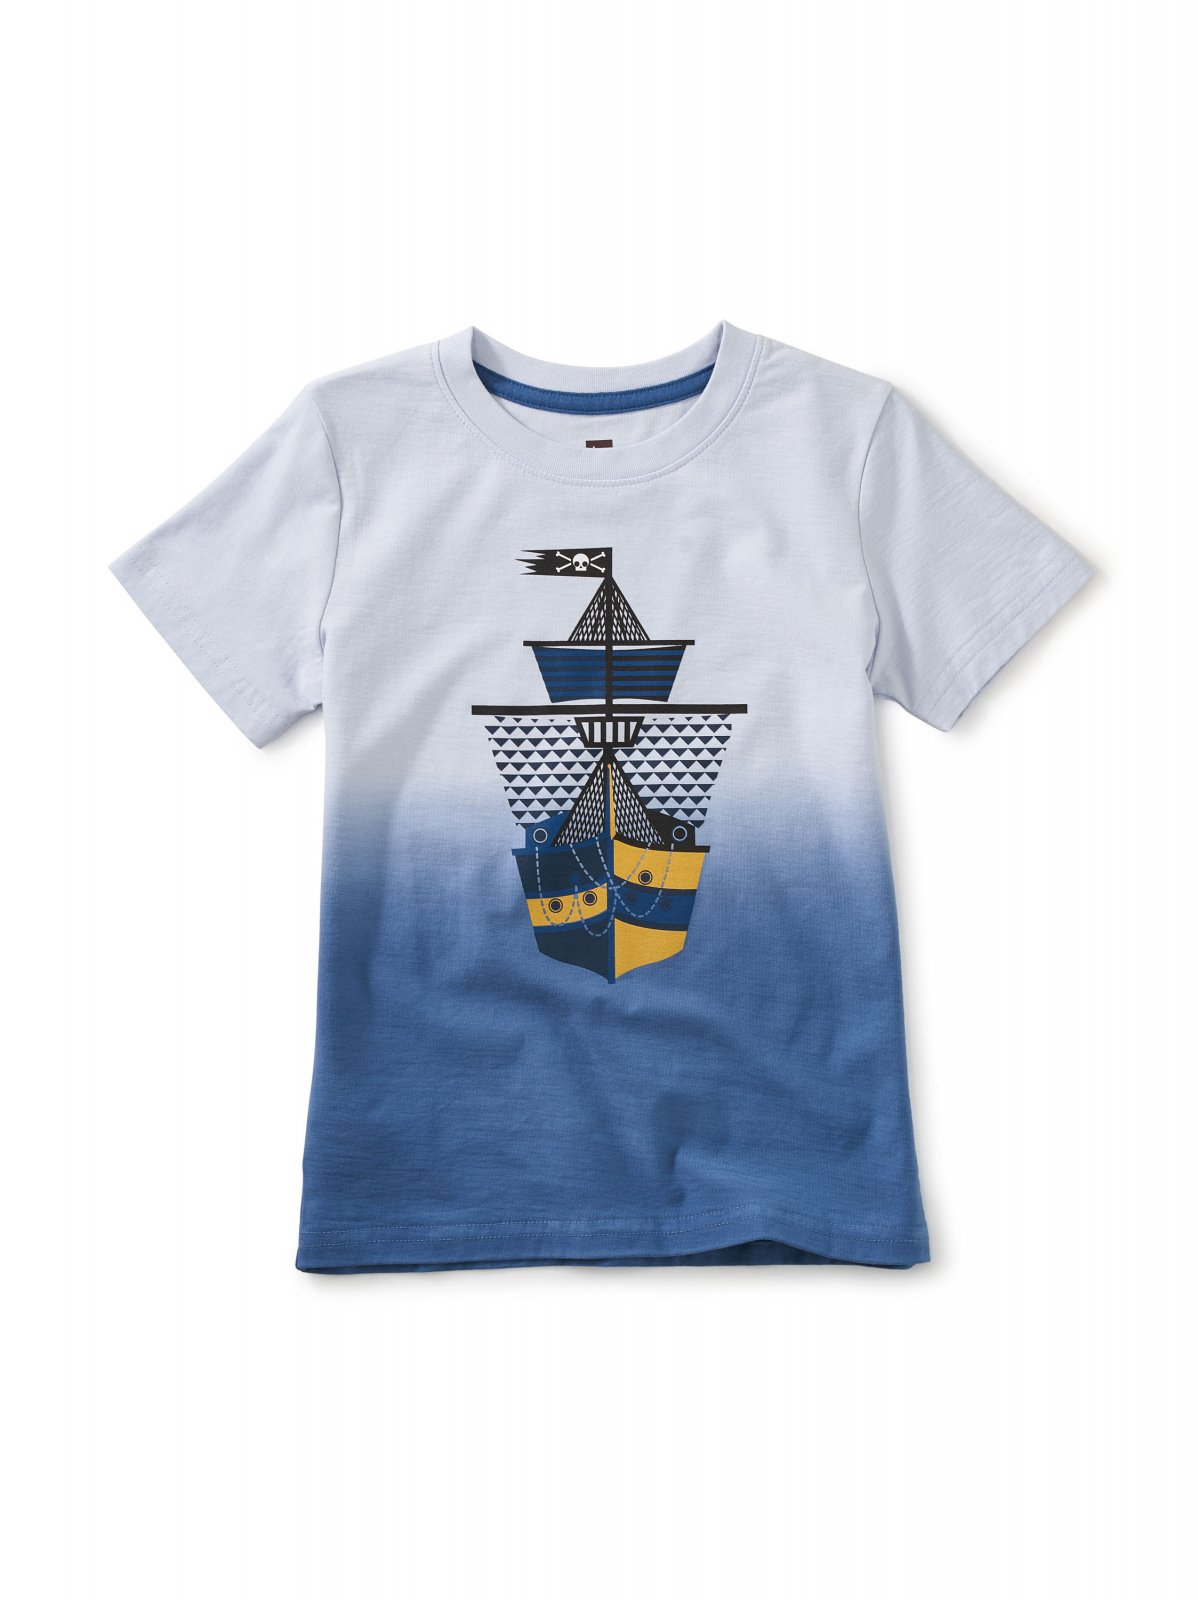 Boy's Dip Dye Ship Shape Graphic Tee by Tea Collection